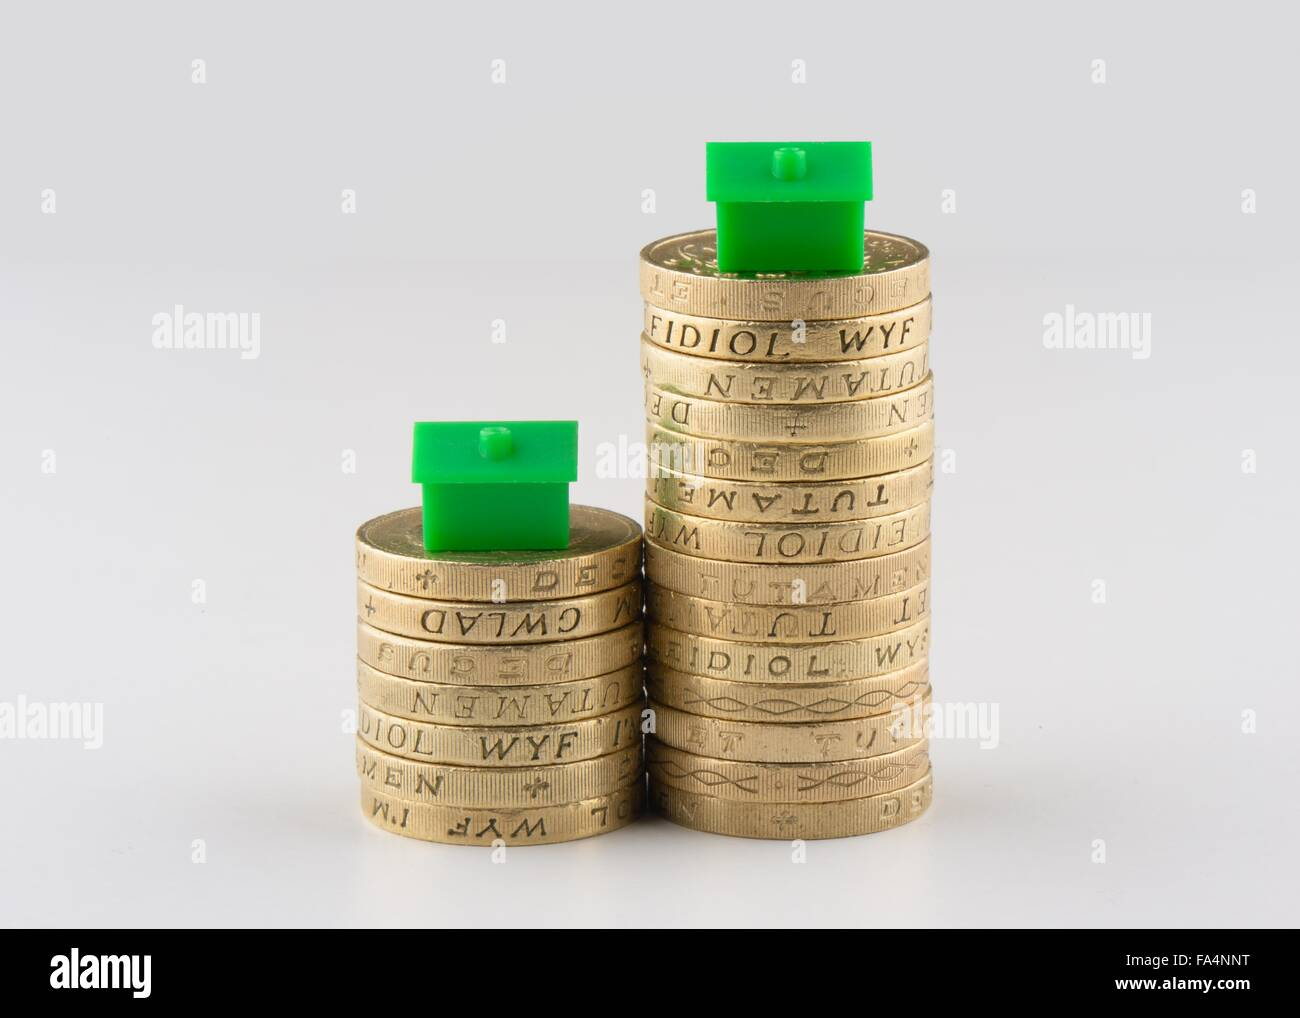 Two piles of UK pound coins with plastic houses on top suggestive of downsizing or the housing market. - Stock Image